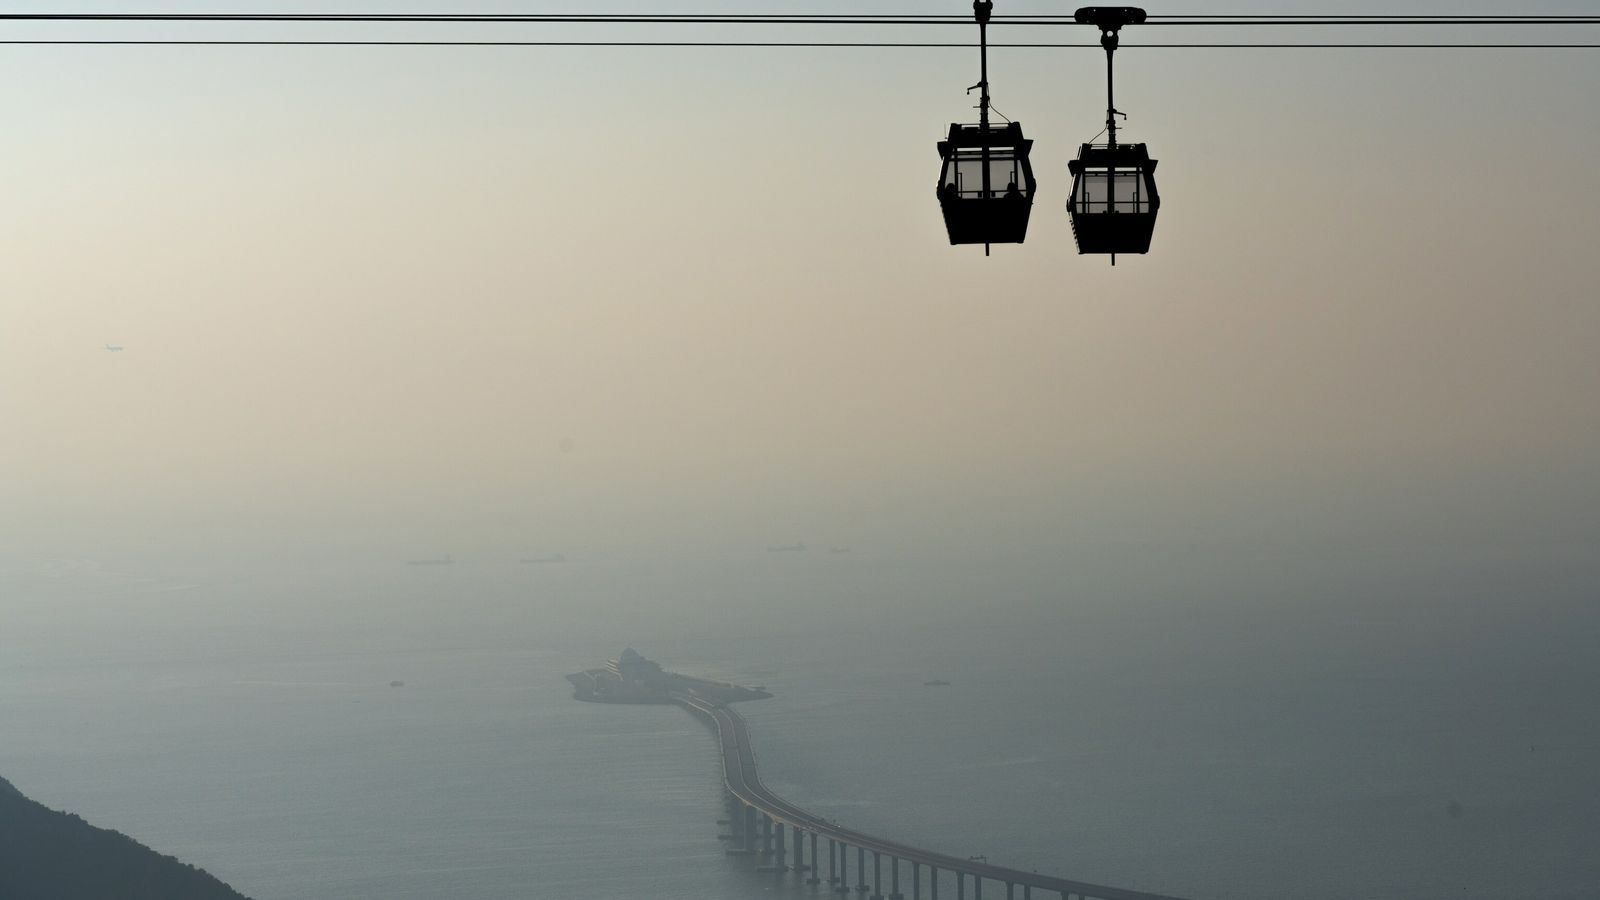 Macau cable car